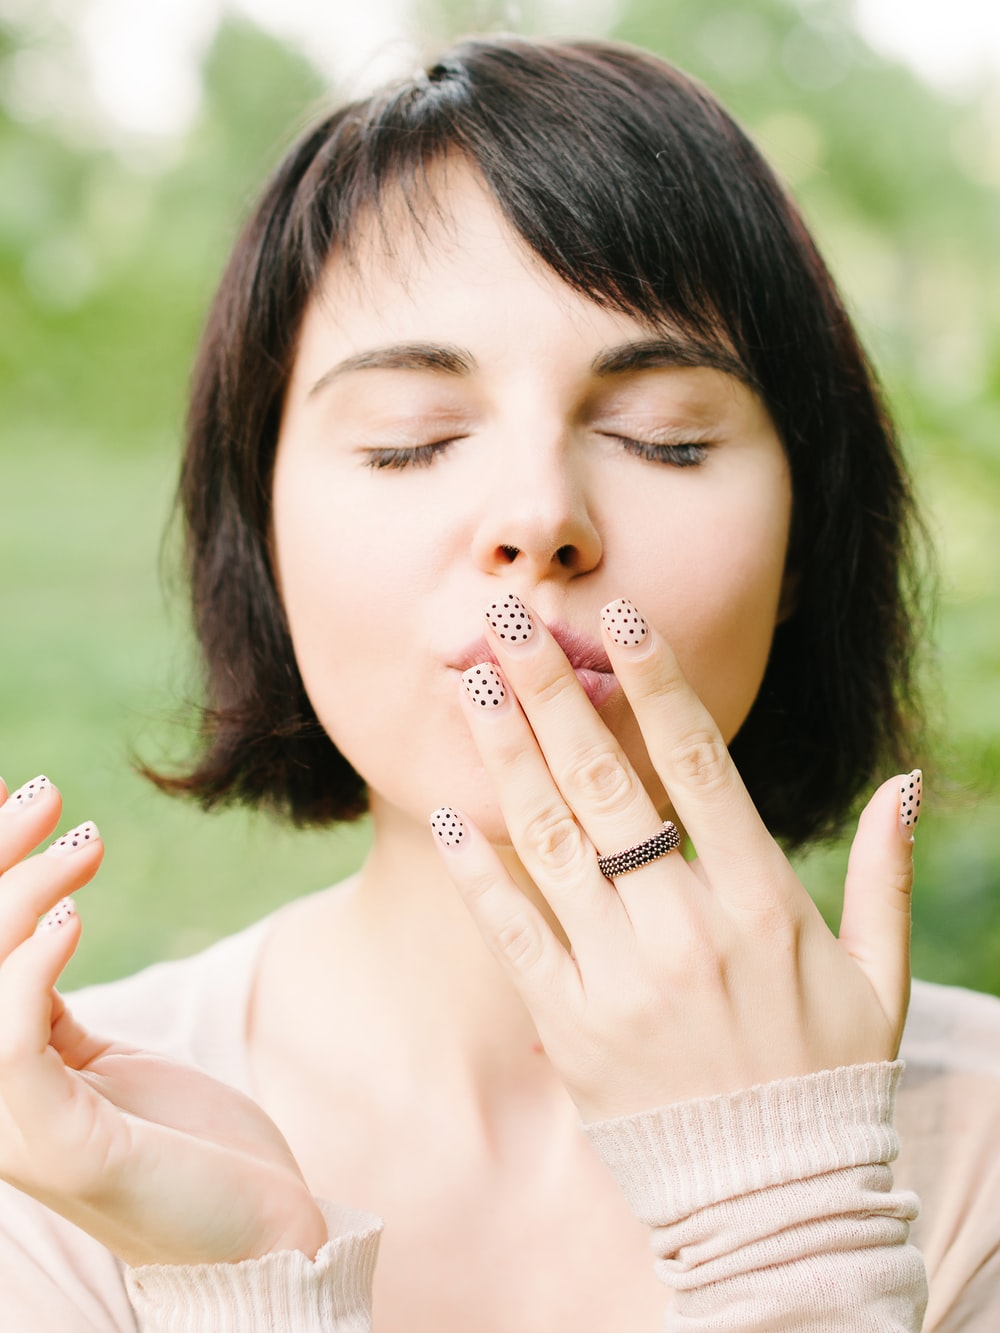 woman touching lips with left hand